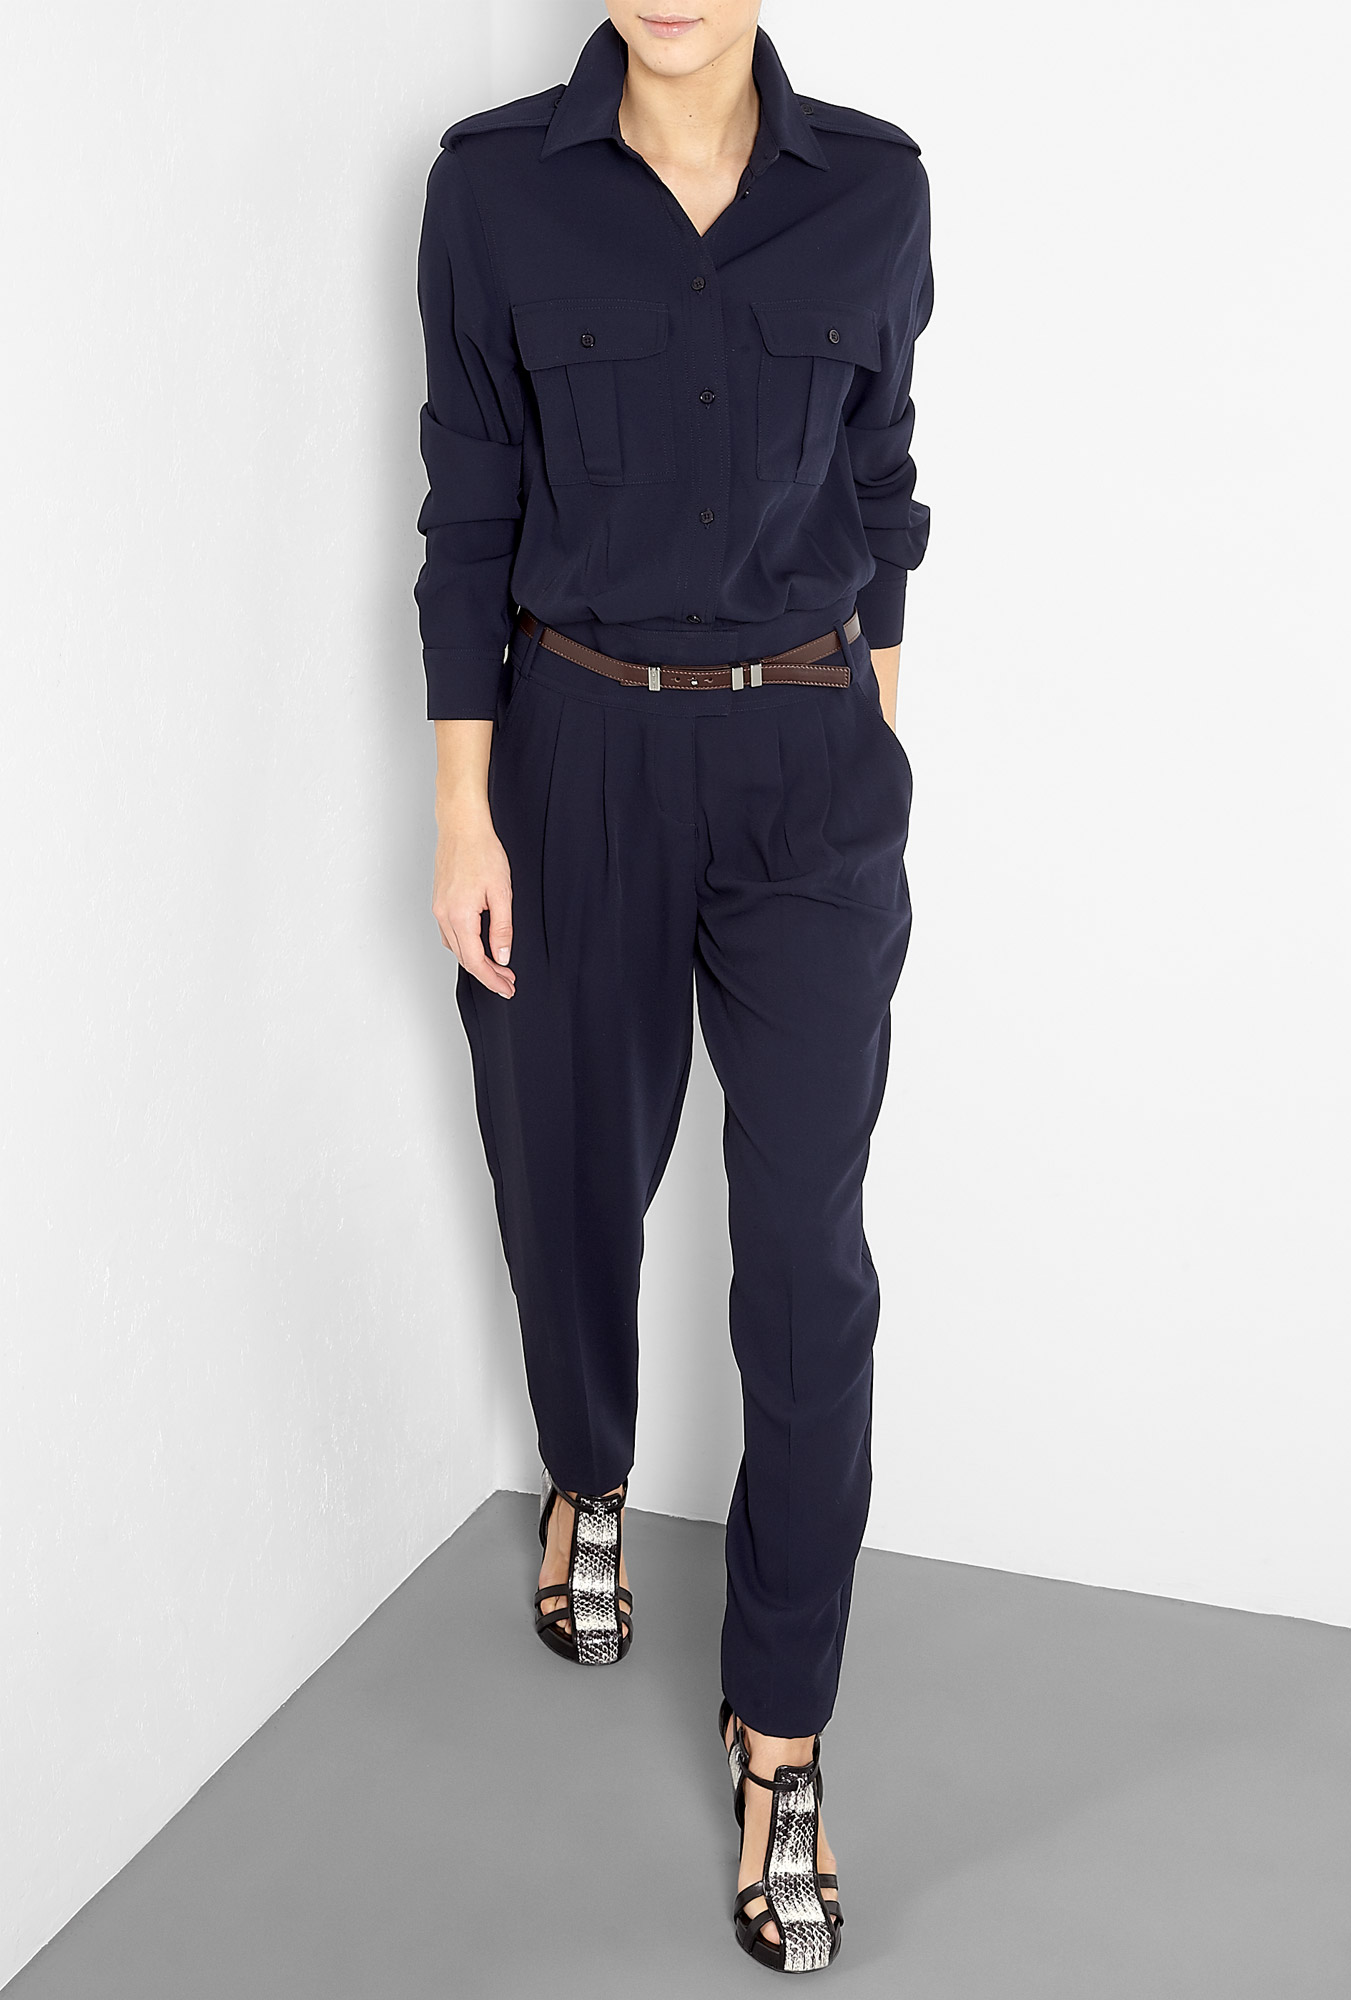 michael michael kors long sleeve pocketed navy jumpsuit in blue navy lyst. Black Bedroom Furniture Sets. Home Design Ideas